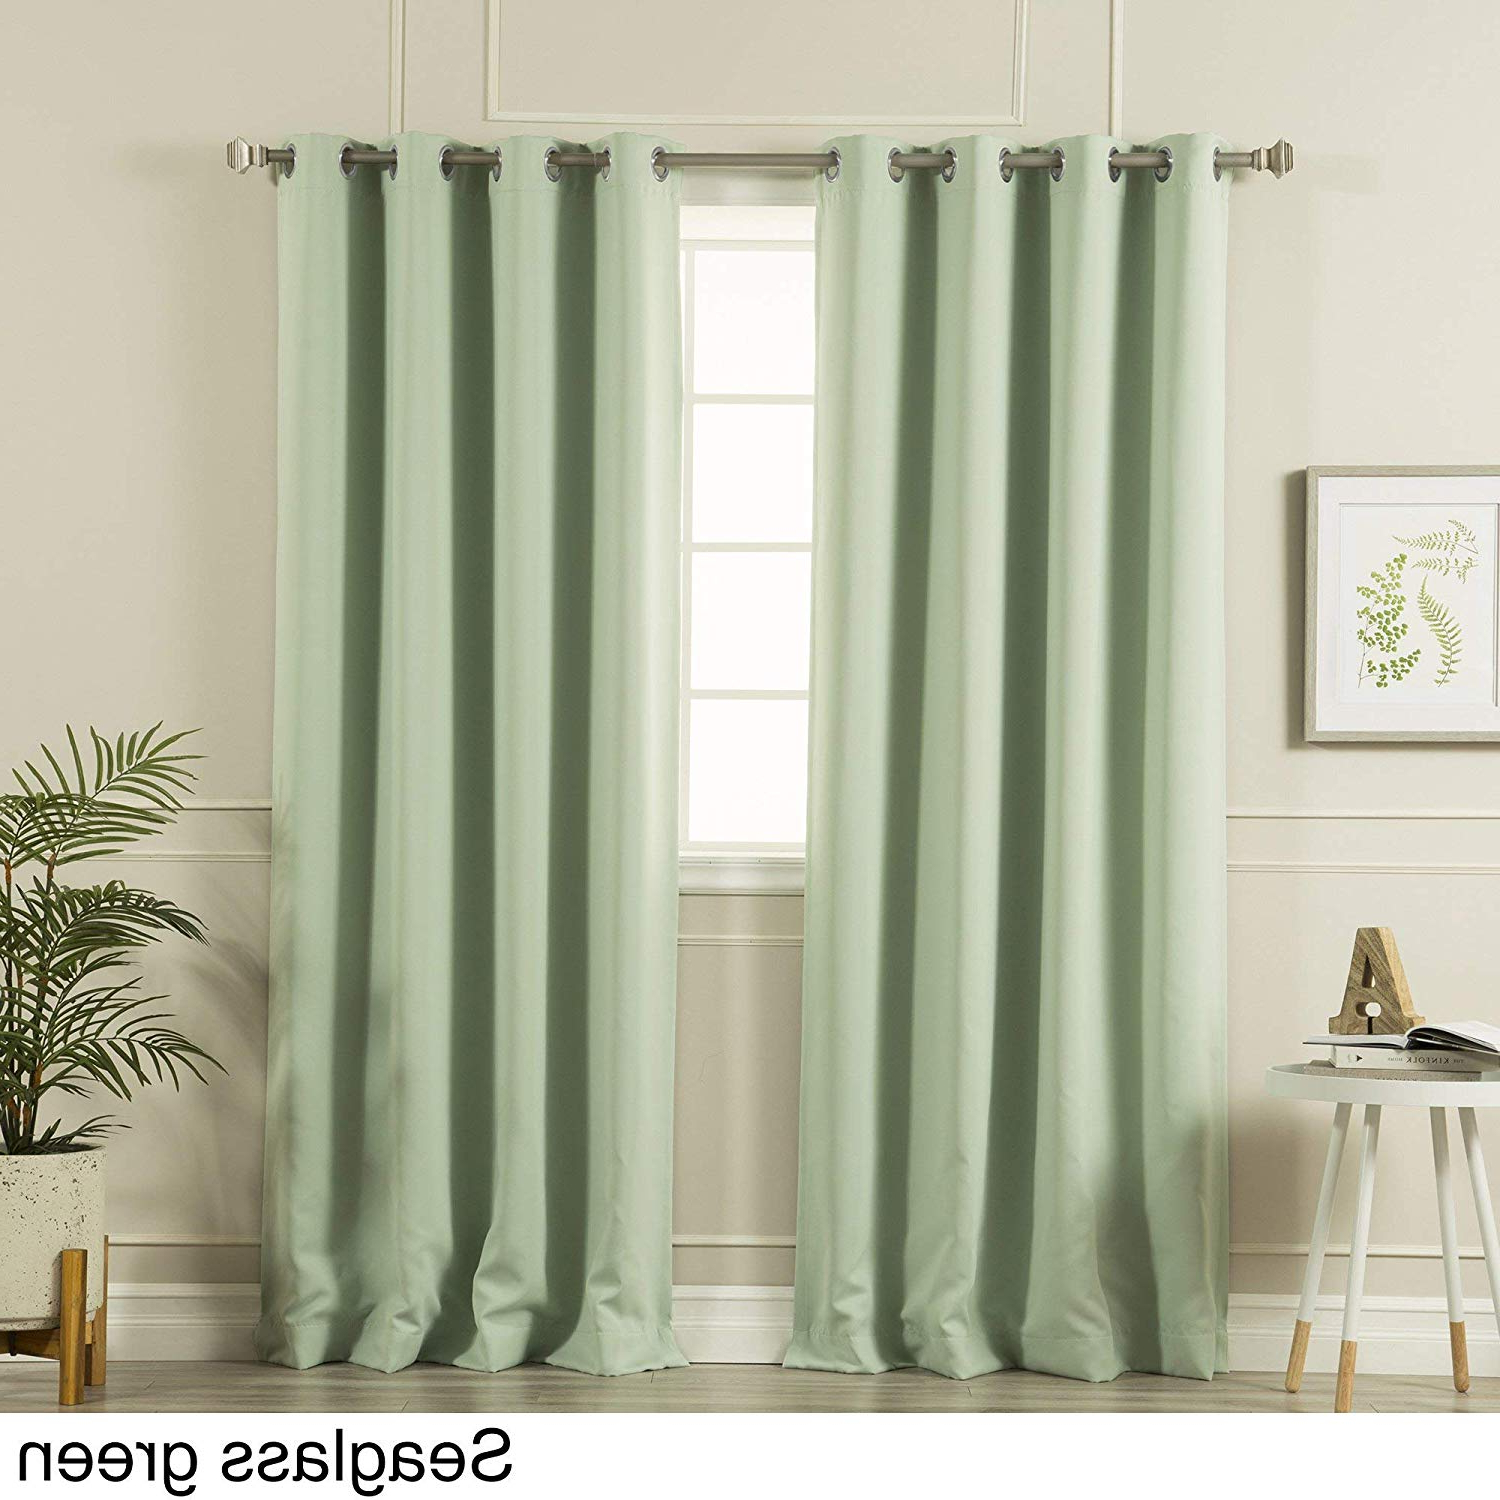 Well Liked Amazon: Aurora Home Silvertone Grommet Top Thermal Pertaining To Silvertone Grommet Thermal Insulated Blackout Curtain Panel Pairs (View 4 of 20)